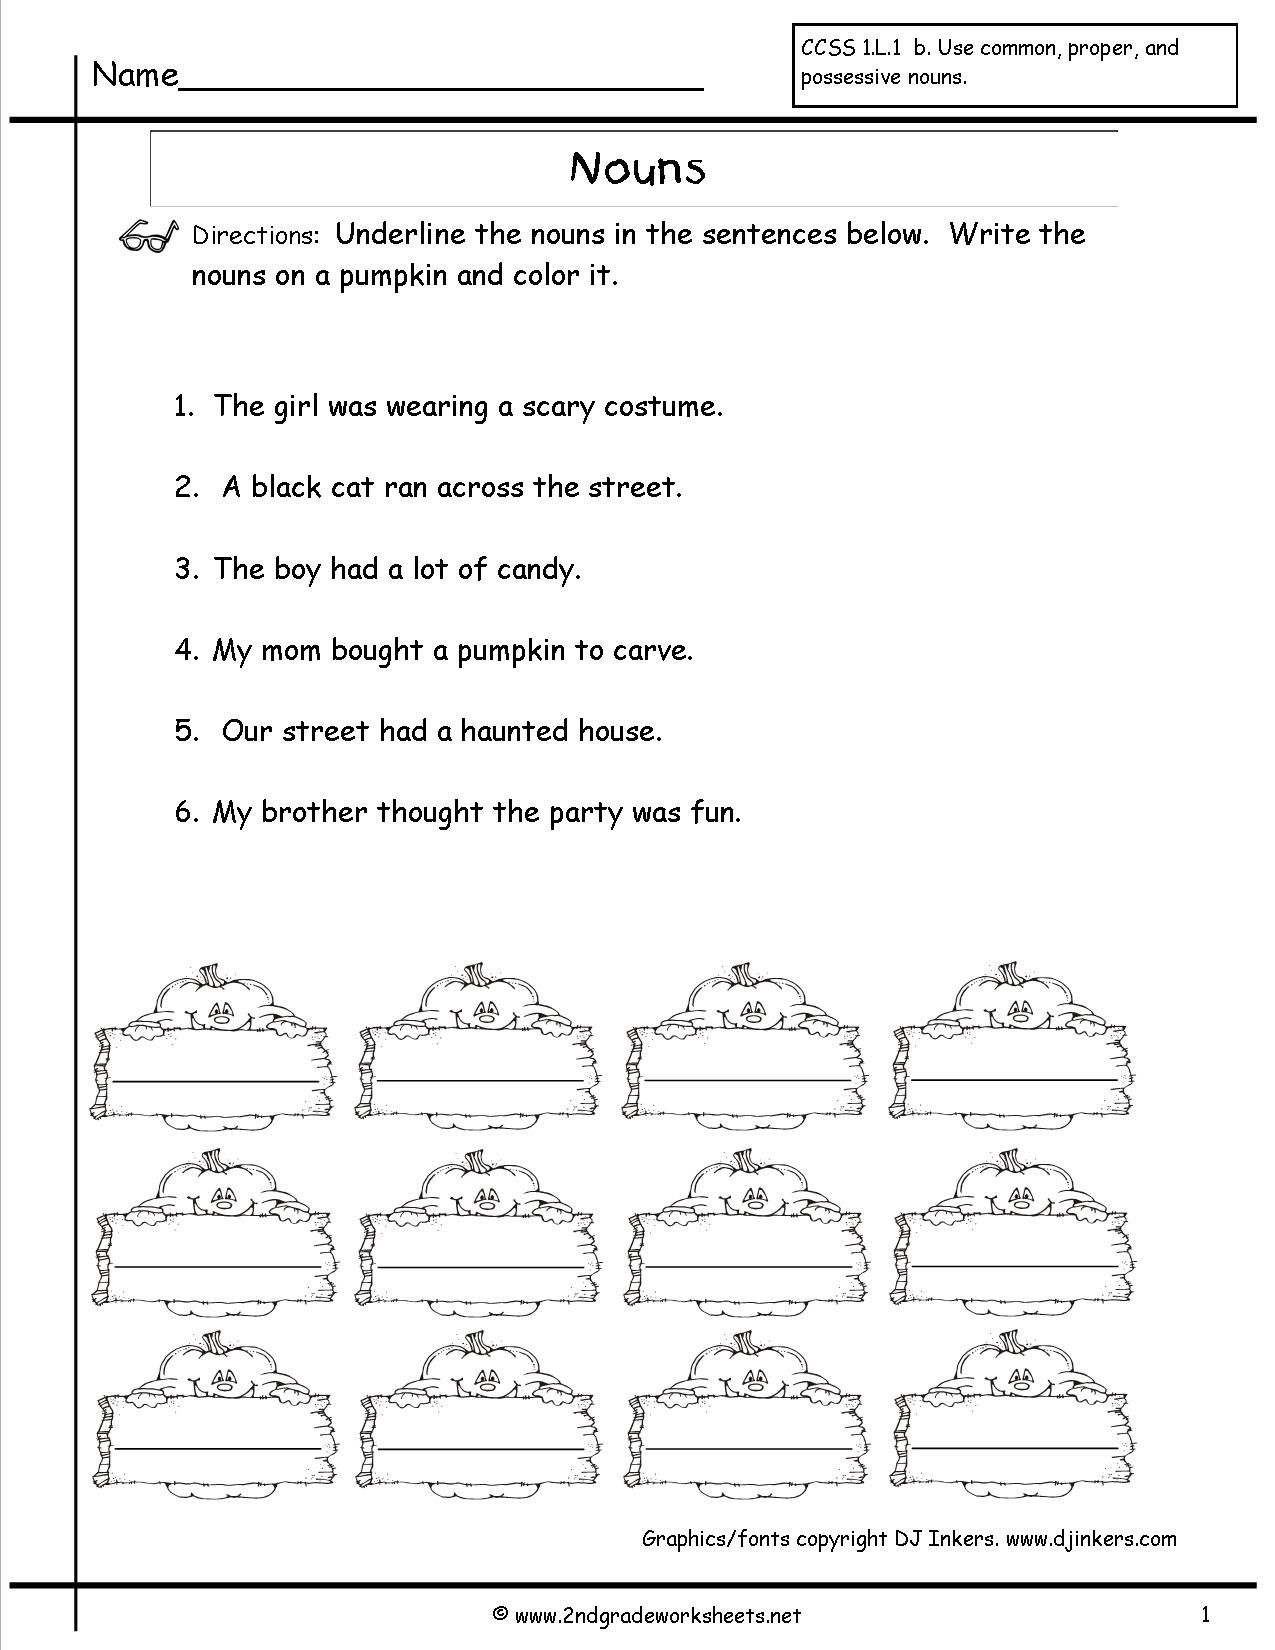 English Grammar Noun Worksheet For Grade 1 Awesome Nouns